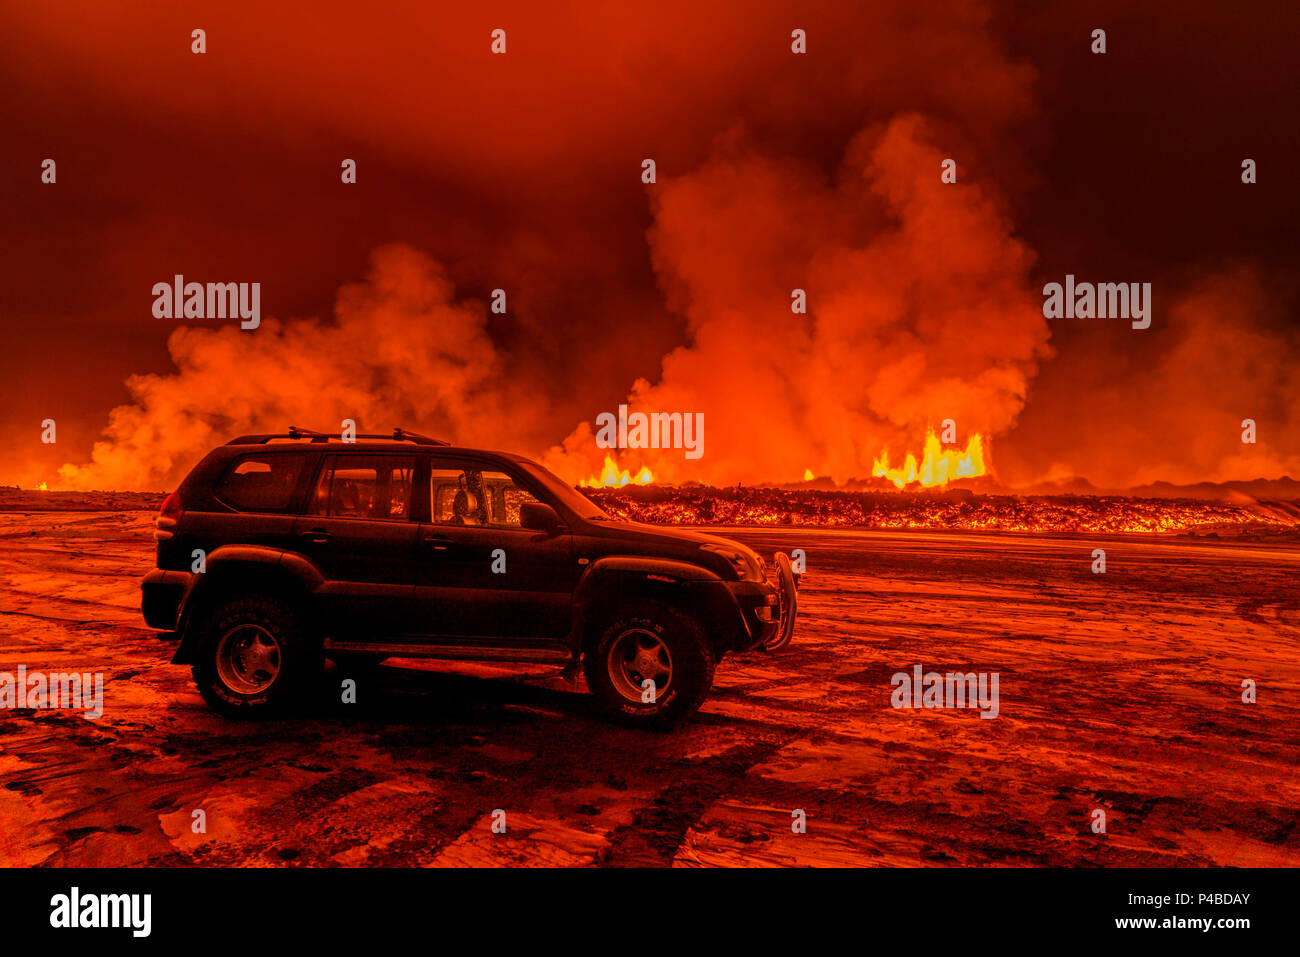 SUV close to the Eruption at Holuhraun, near the Bardarbunga Volcano, Iceland. August 29, 2014 a fissure eruption started in Holuhraun at the northern end of a magma intrusion, which had moved progressively north, from the Bardarbunga volcano. Picture Date-Sept. 2, 2014 Stock Photo